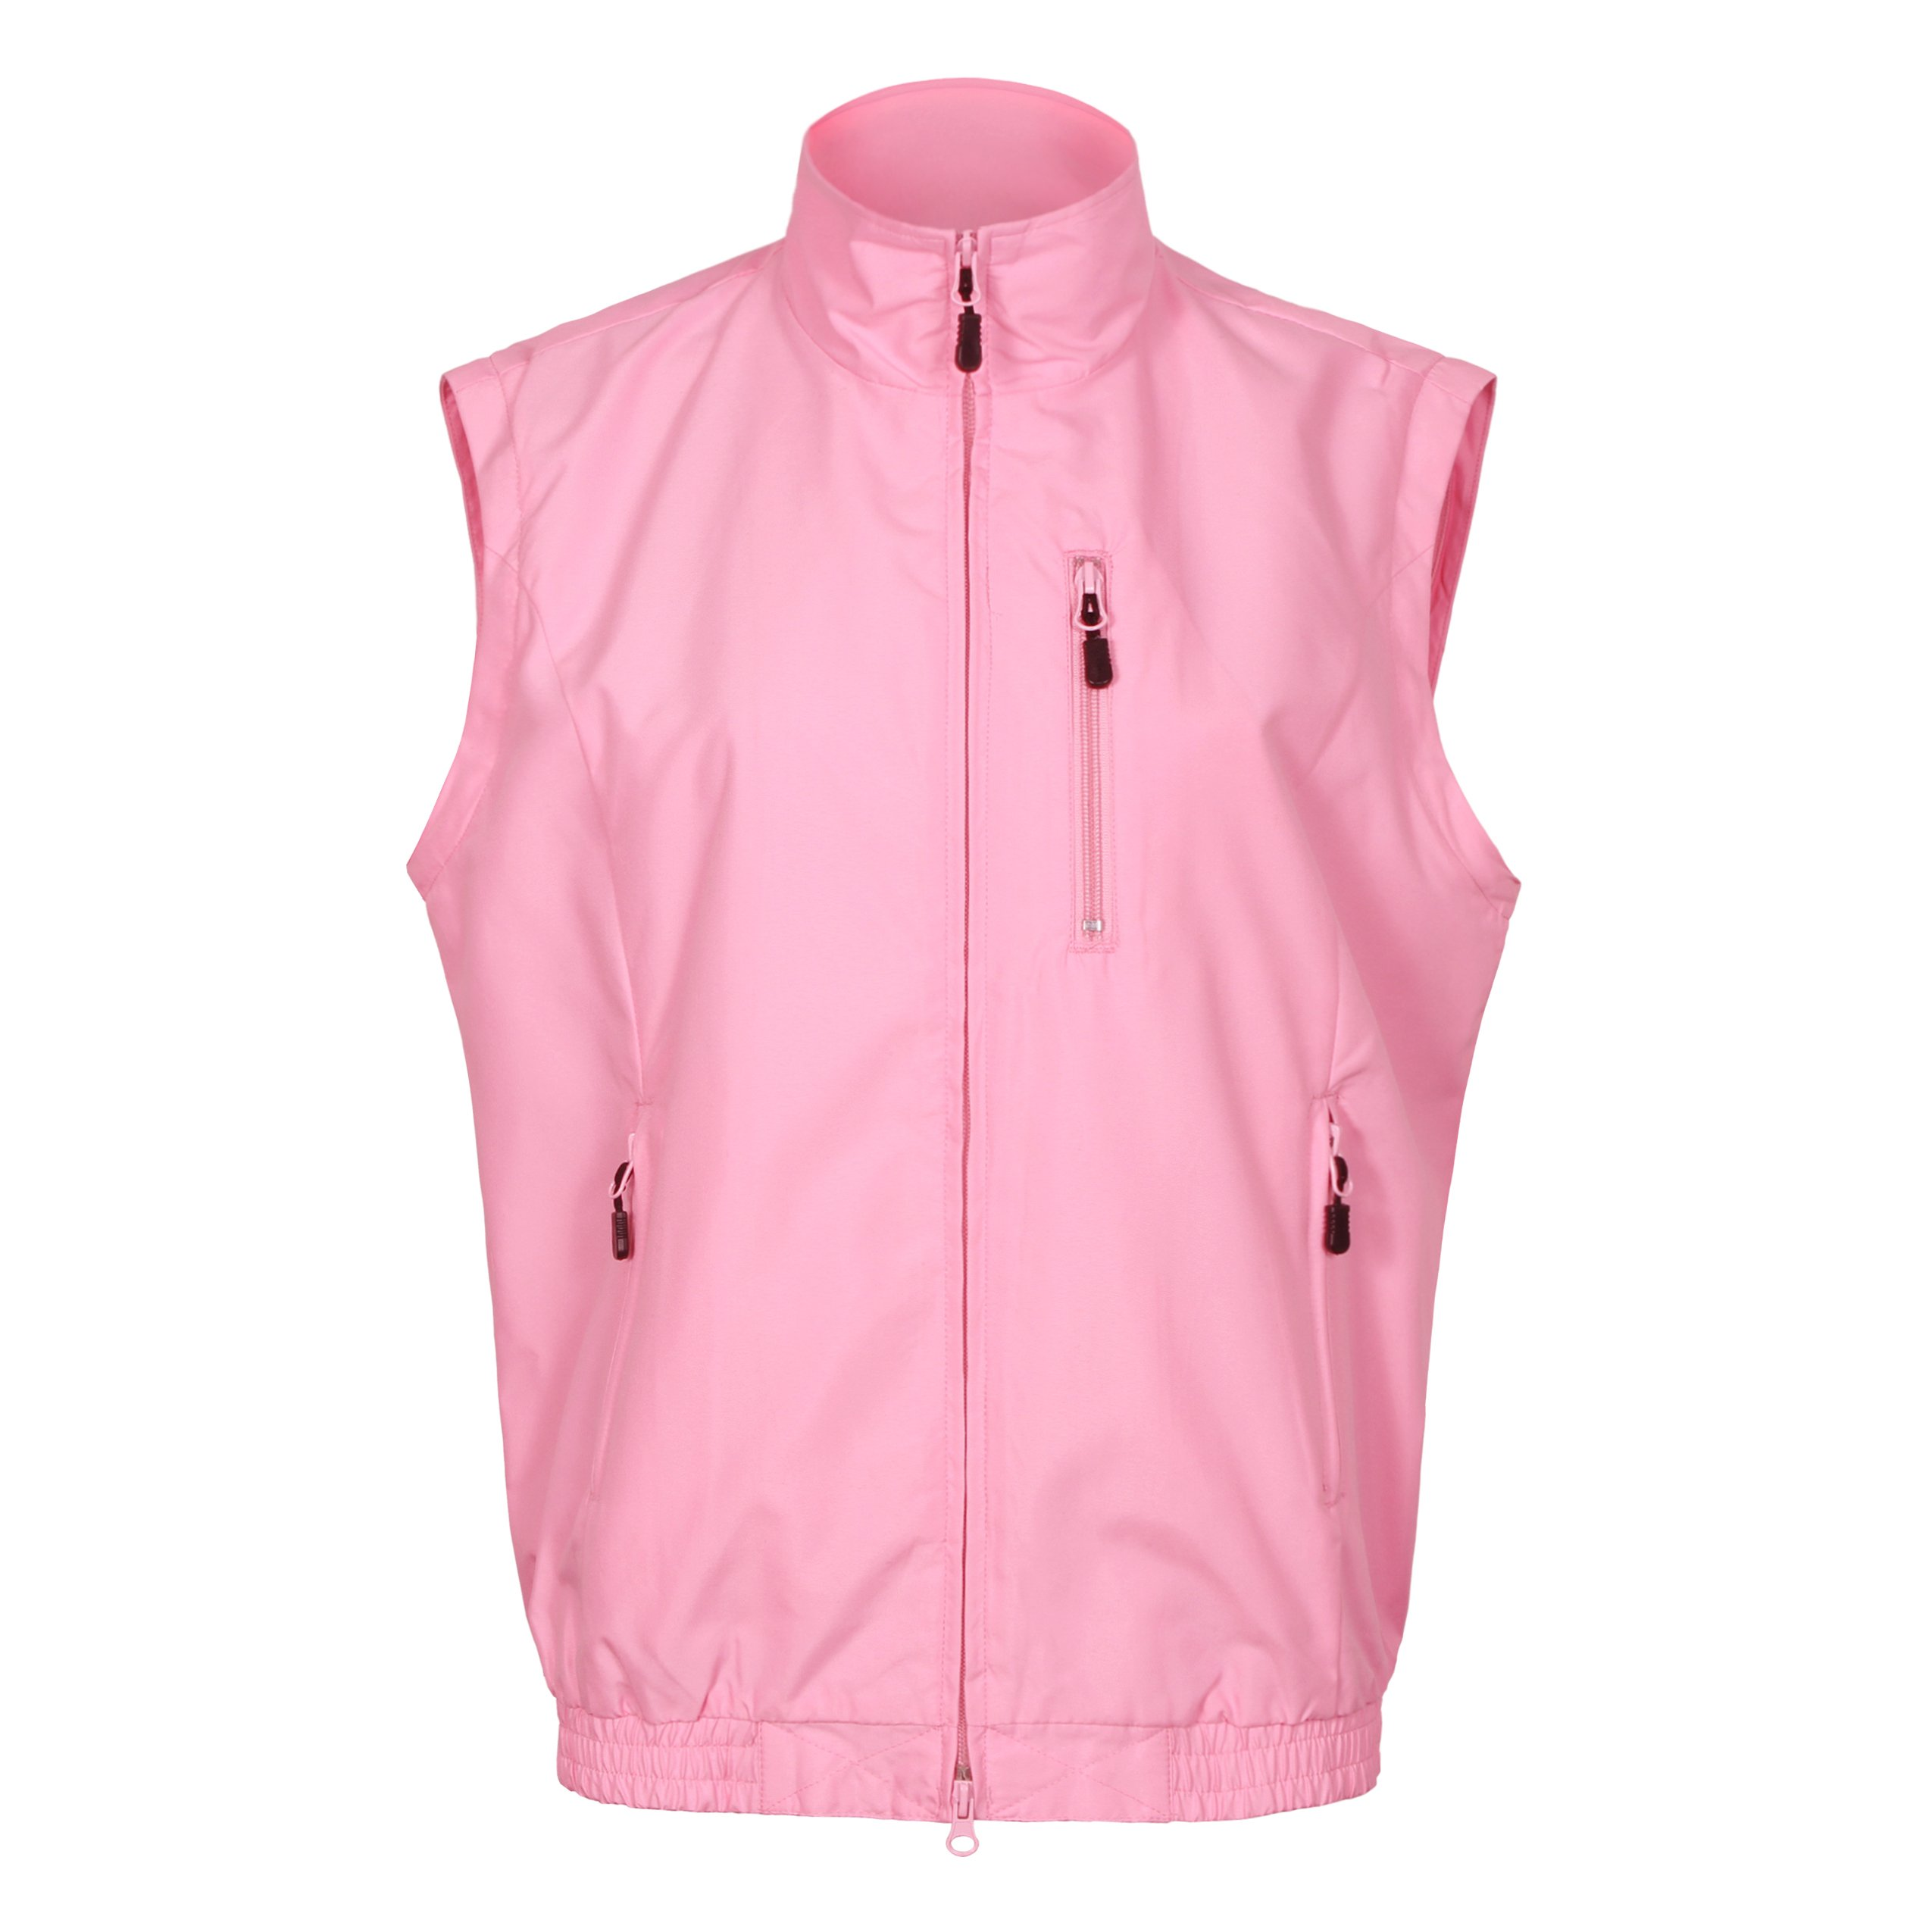 Tres Bien Golf Women's 2 in 1 Convertible Jacket / Vest (Large, Pink) by Tres Bien Golf (Image #2)